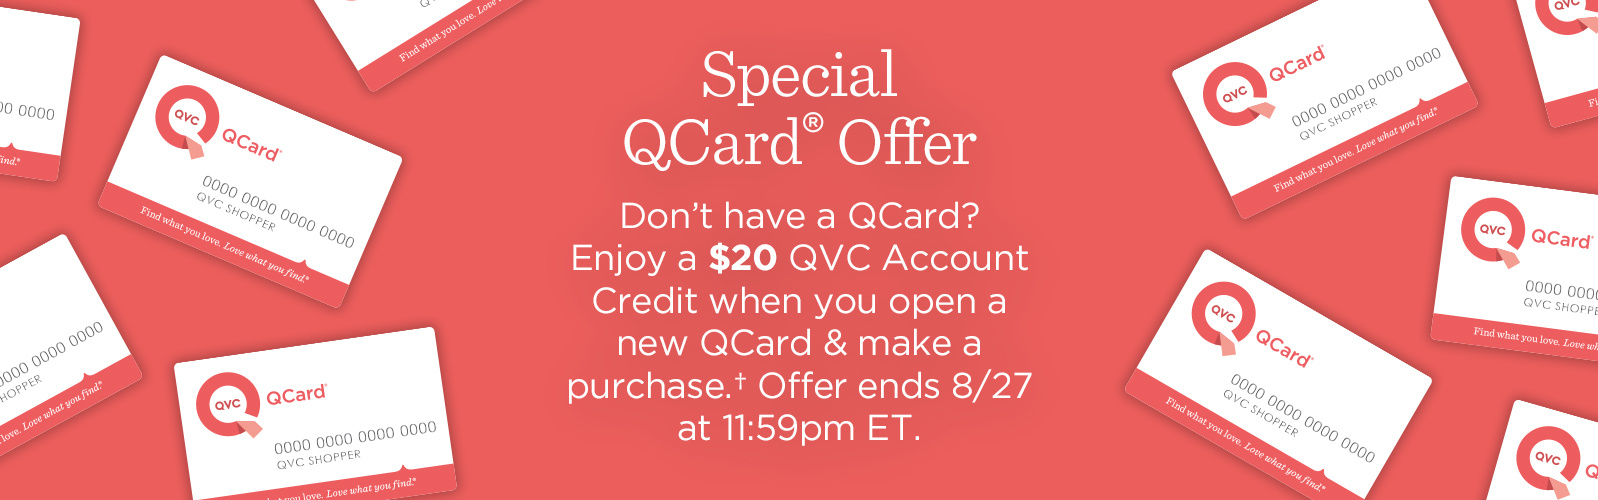 Special QCard® Offer Don't have a QCard? Enjoy a $20 QVC Account Credit when you open a new QCard & make a purchase.† Offer ends 8/27 at 11:59pm ET.